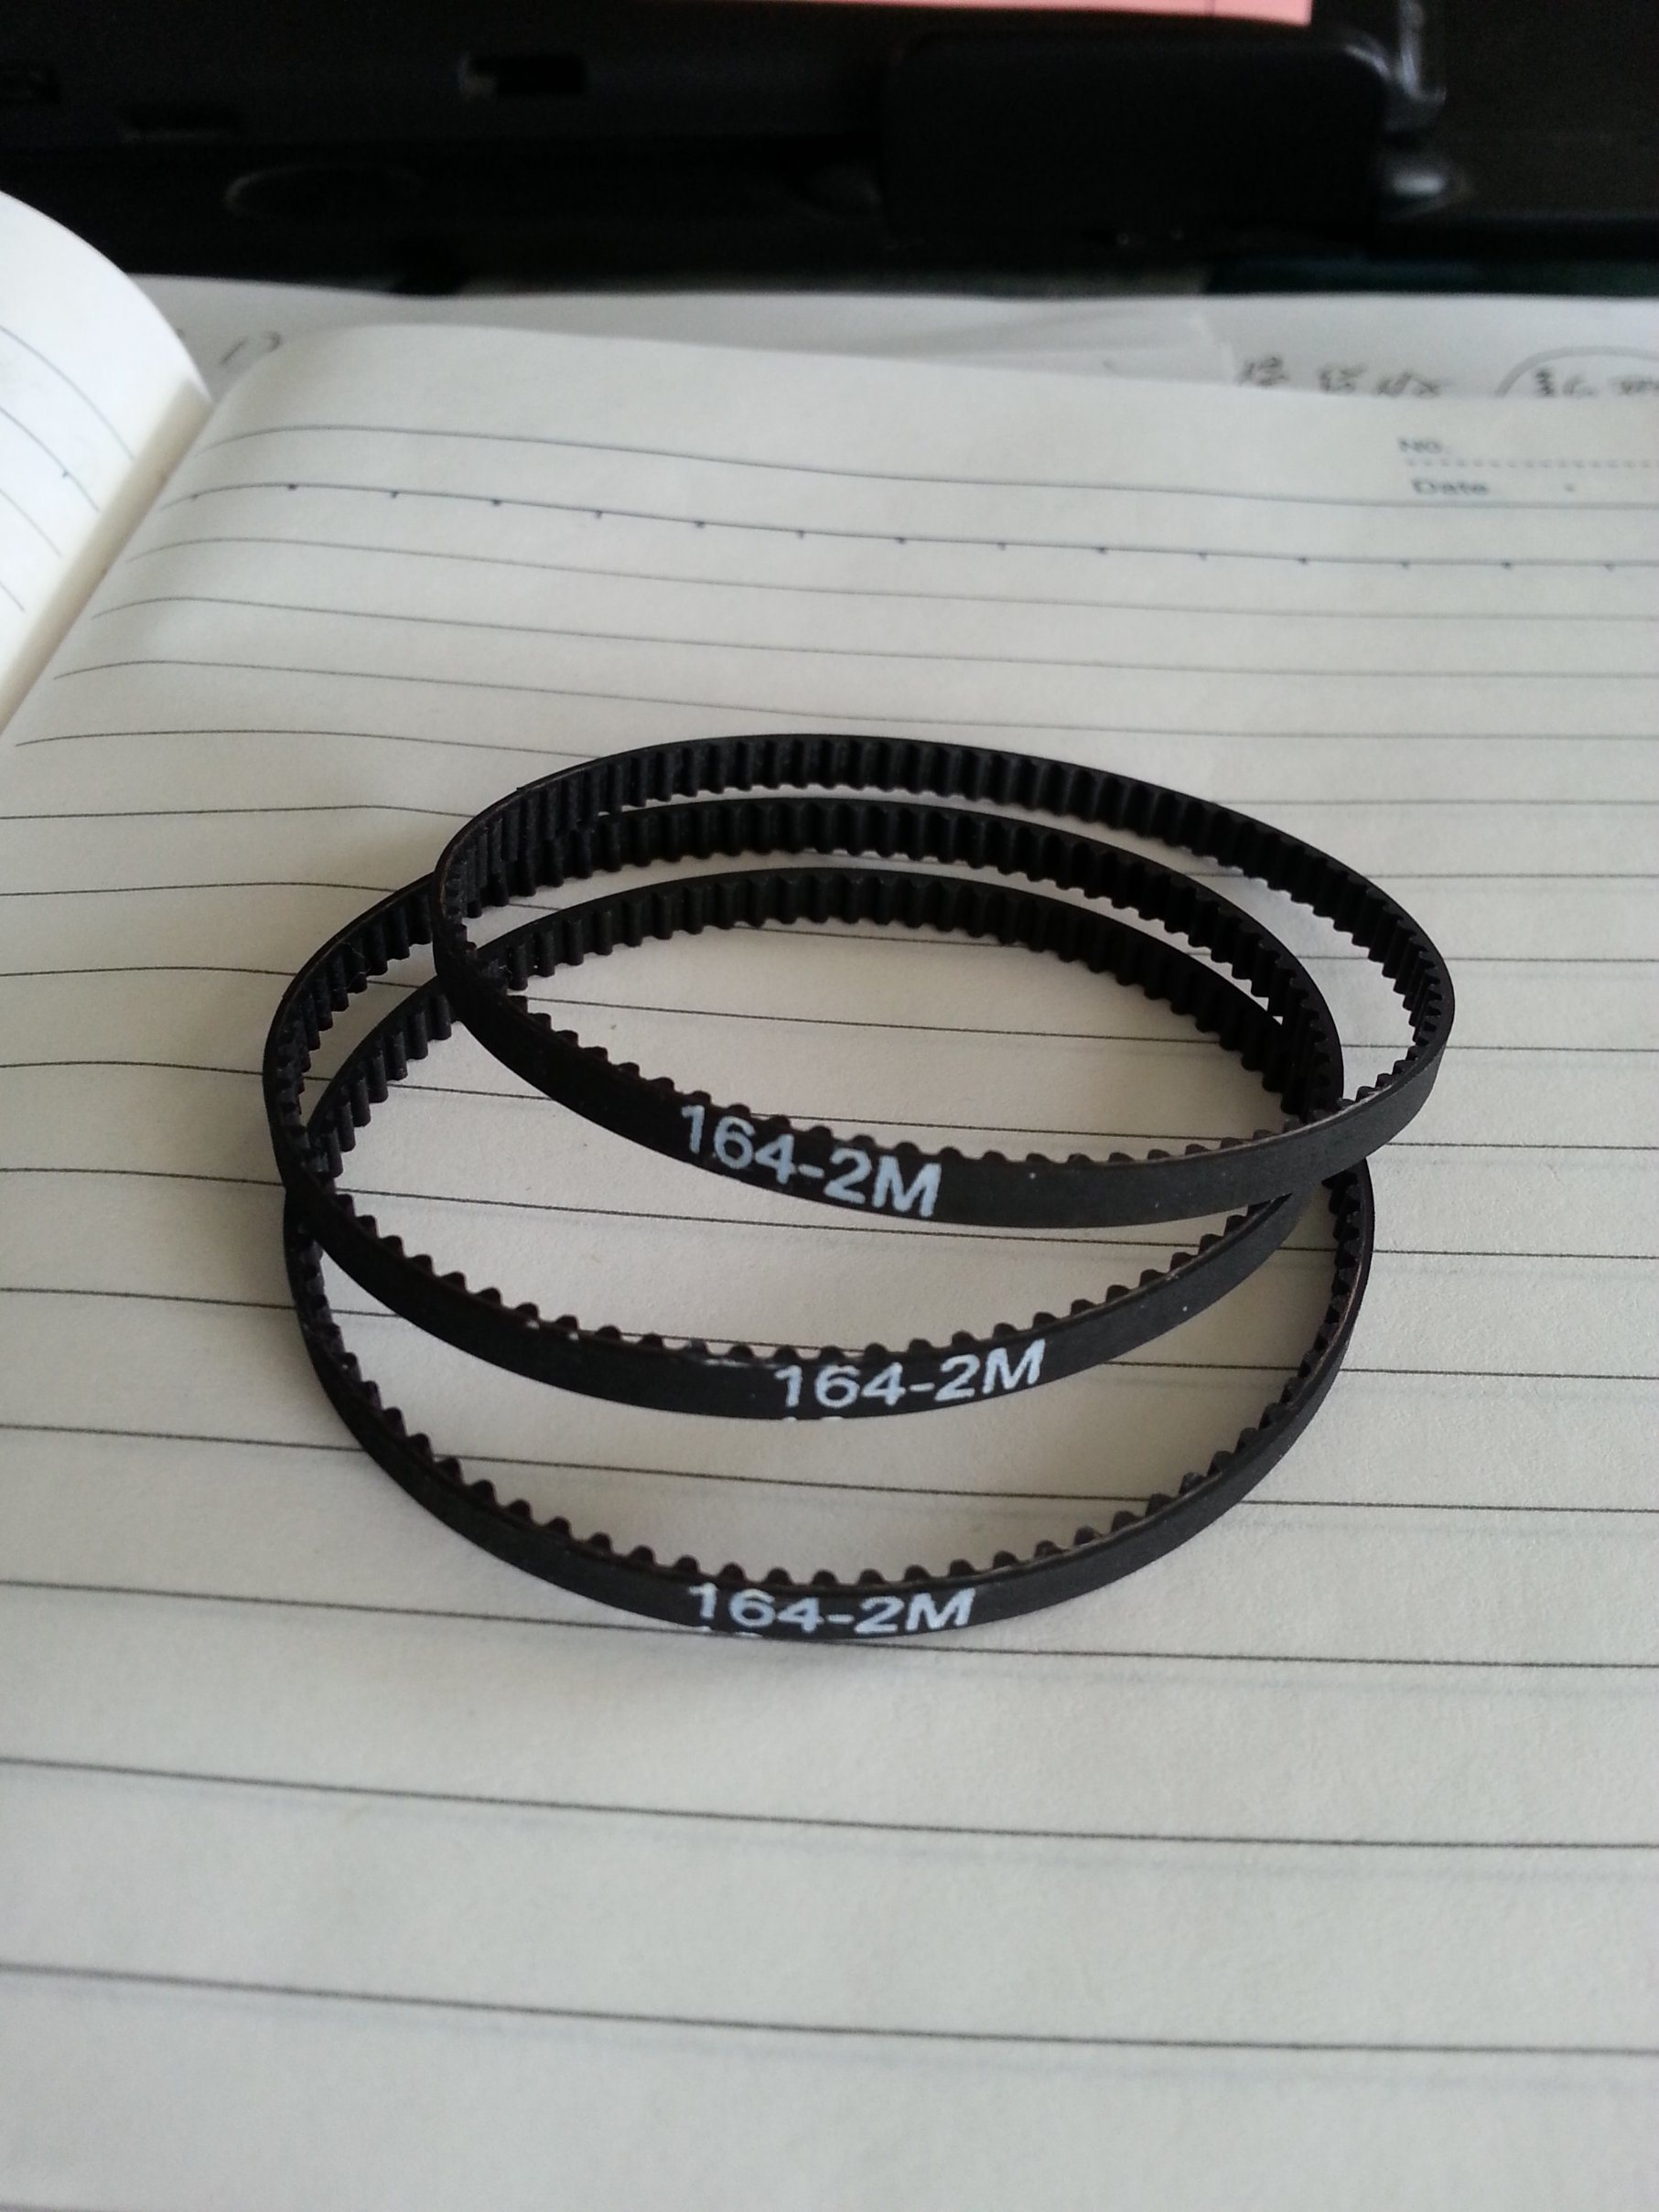 New Rubber Timing Belt Std2m, S3m, S5m, S8m, S14m